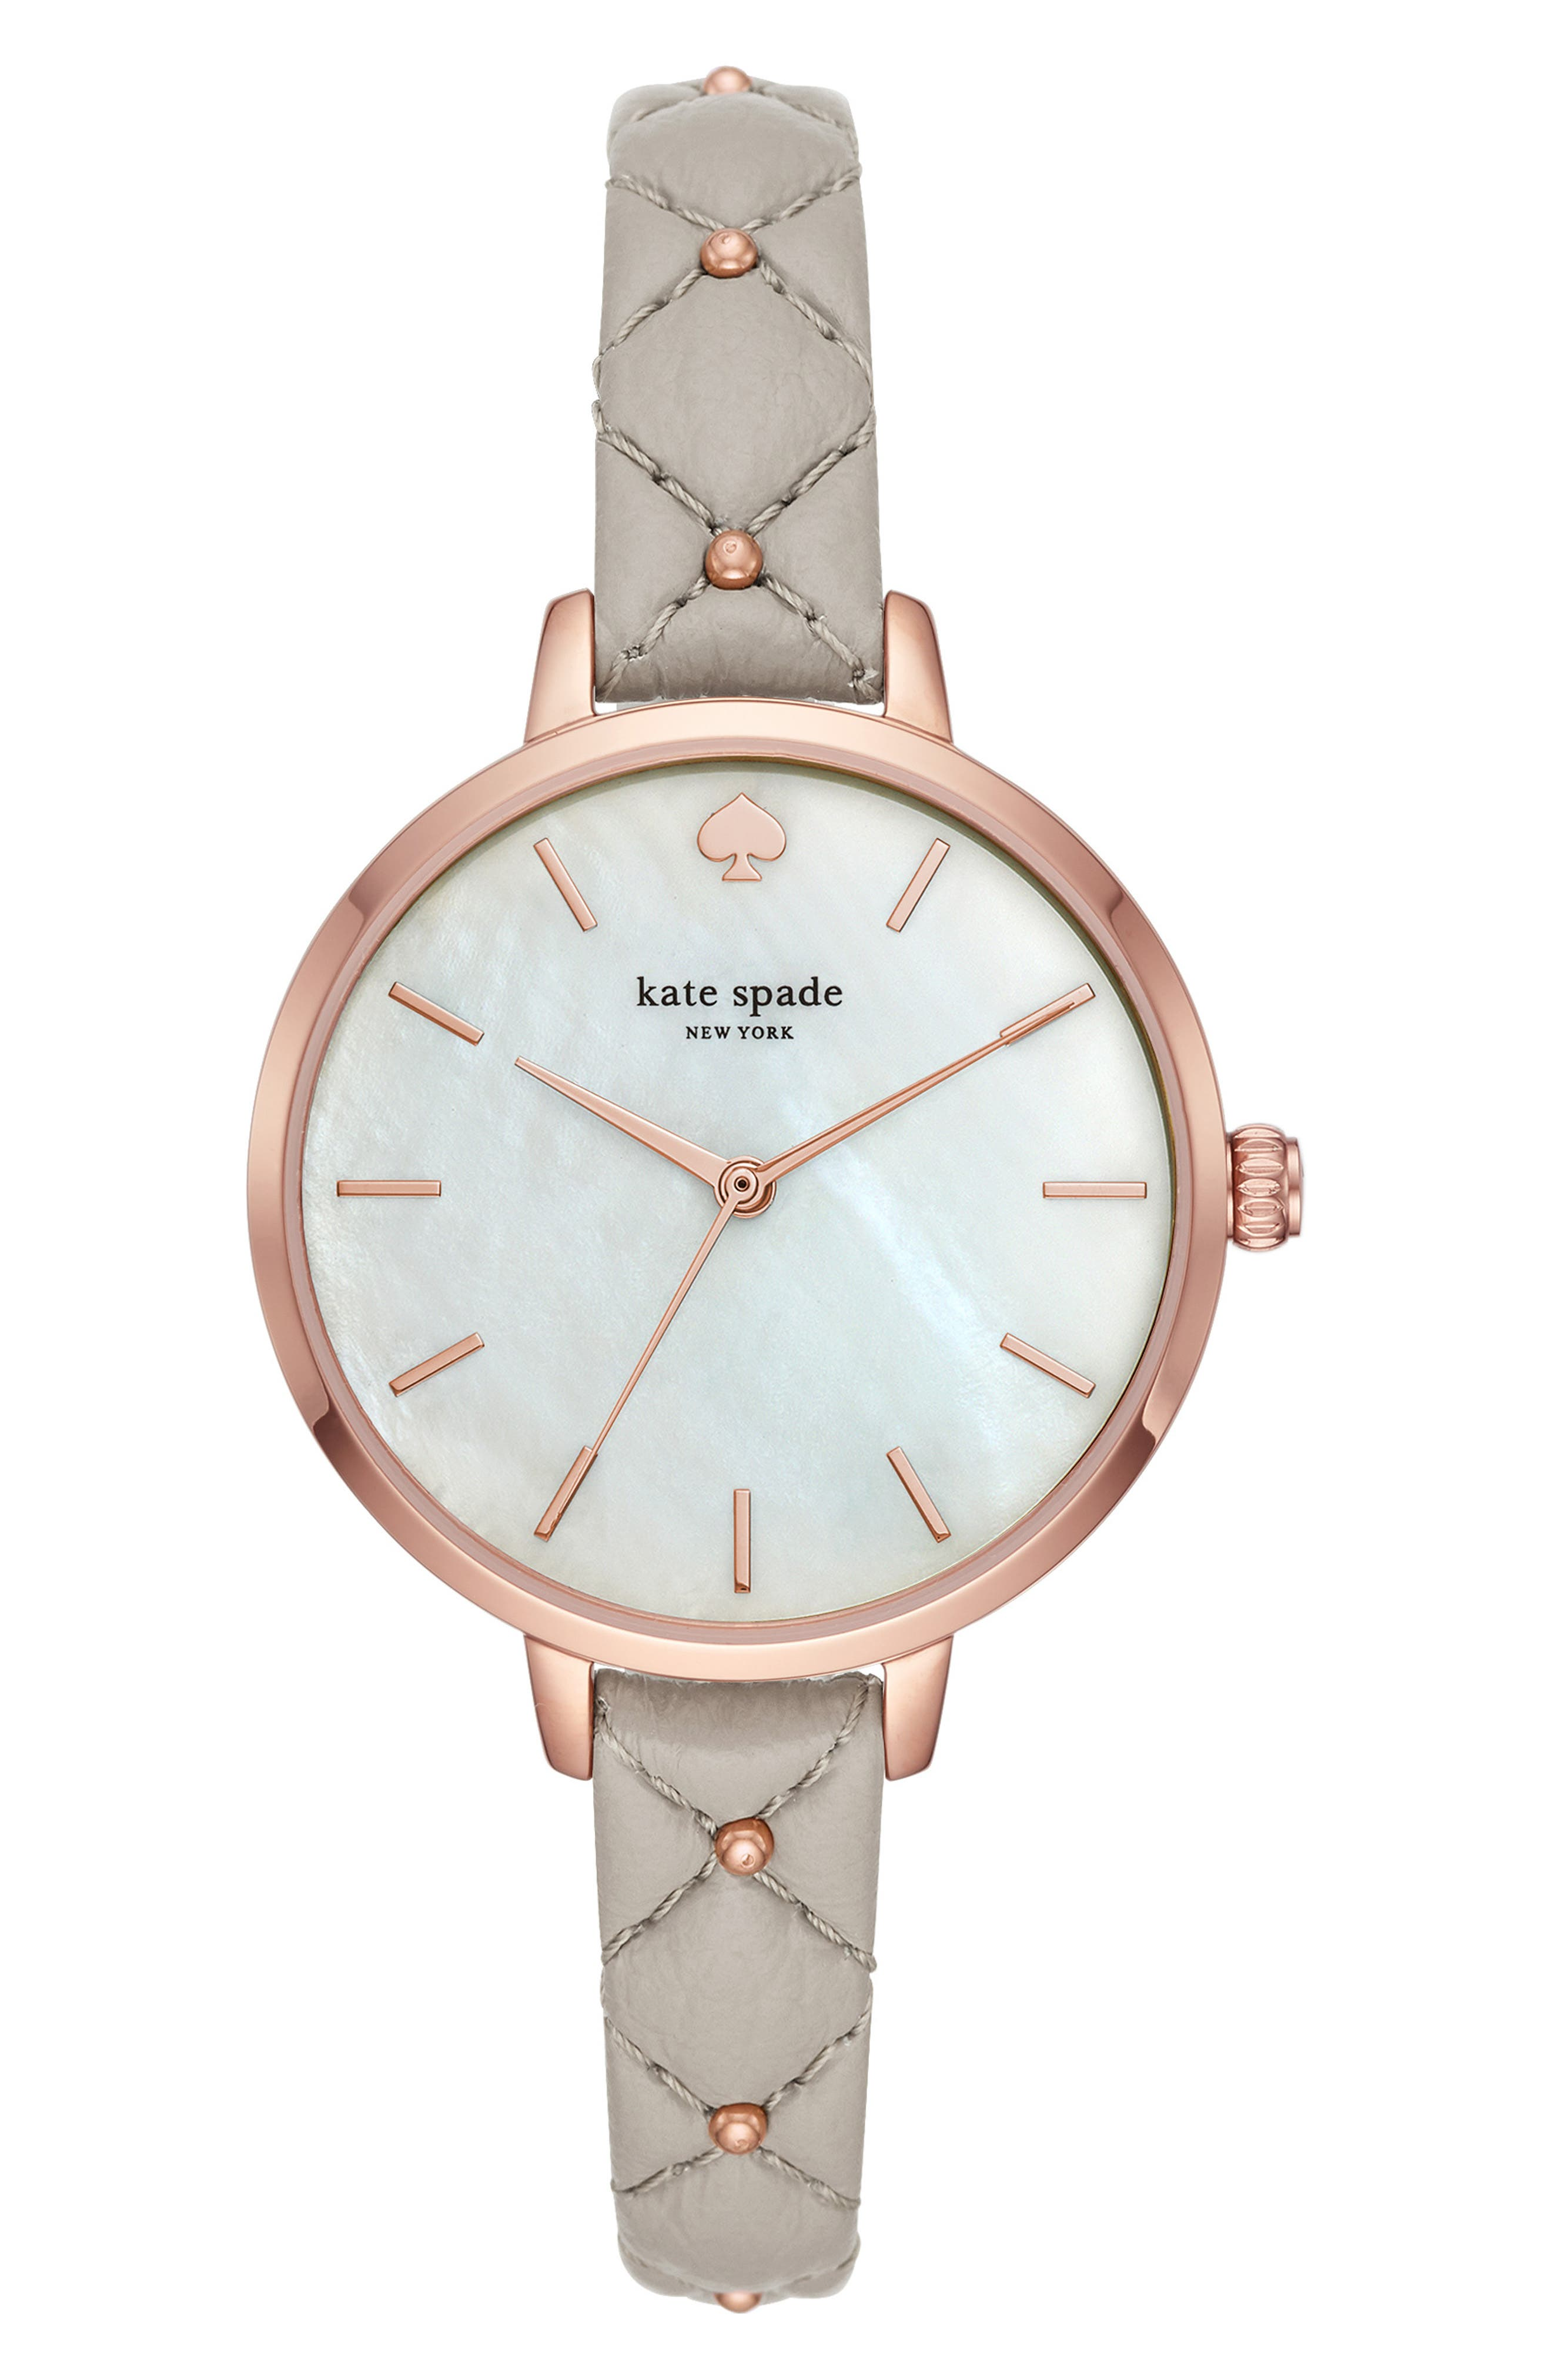 KATE SPADE NEW YORK metro leather strap watch, 34mm, Main, color, GREY/ MOP/ ROSE GOLD